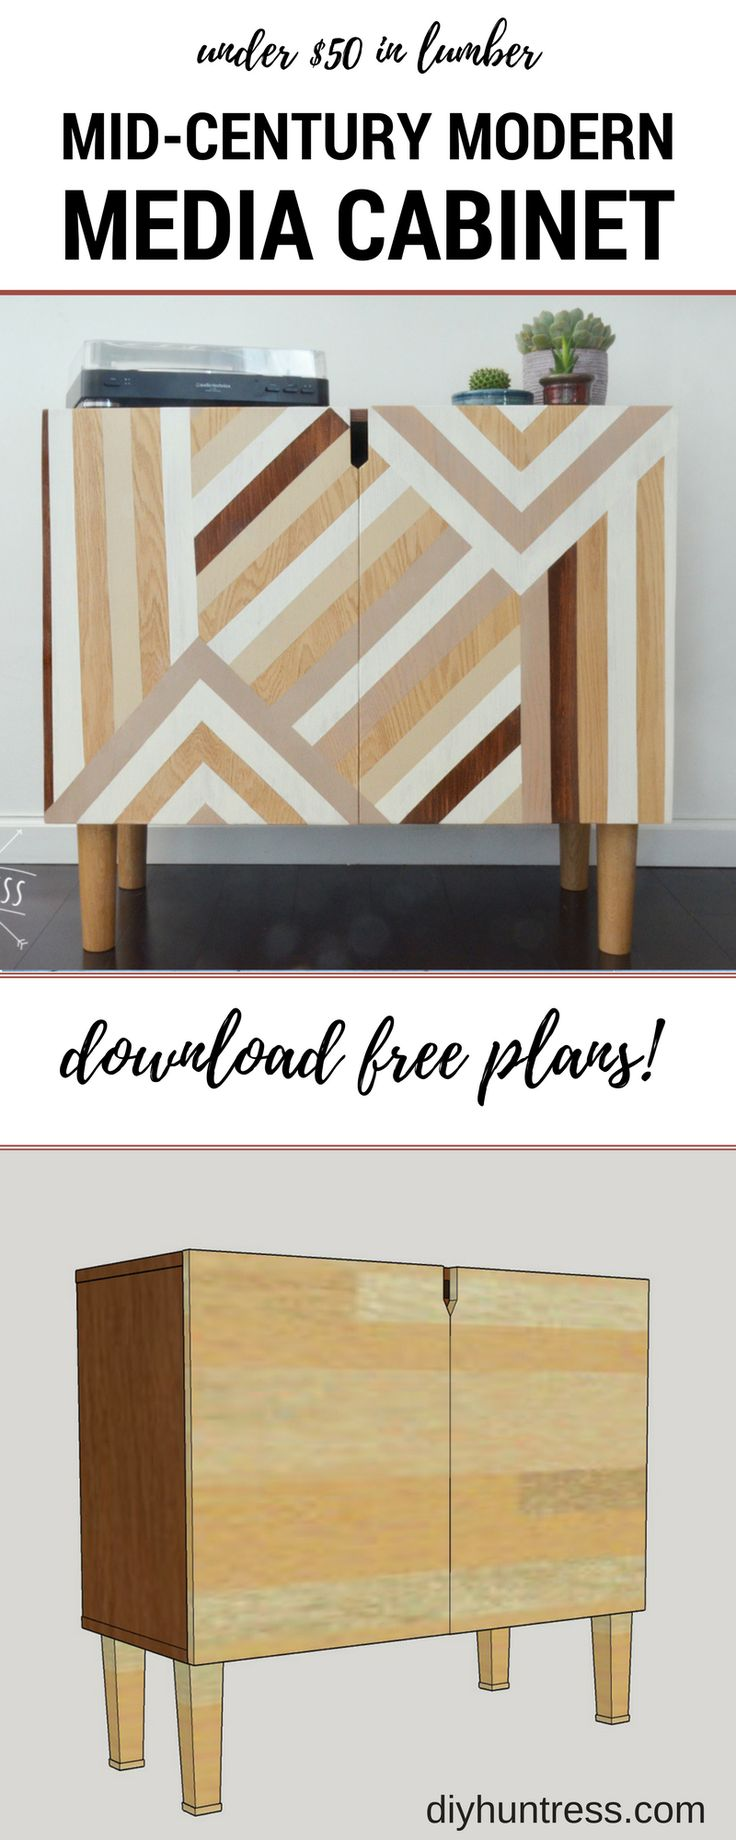 As of recently, I have been finding myself completely obsessed with mid-century modern sideboards and media cabinets. It's…